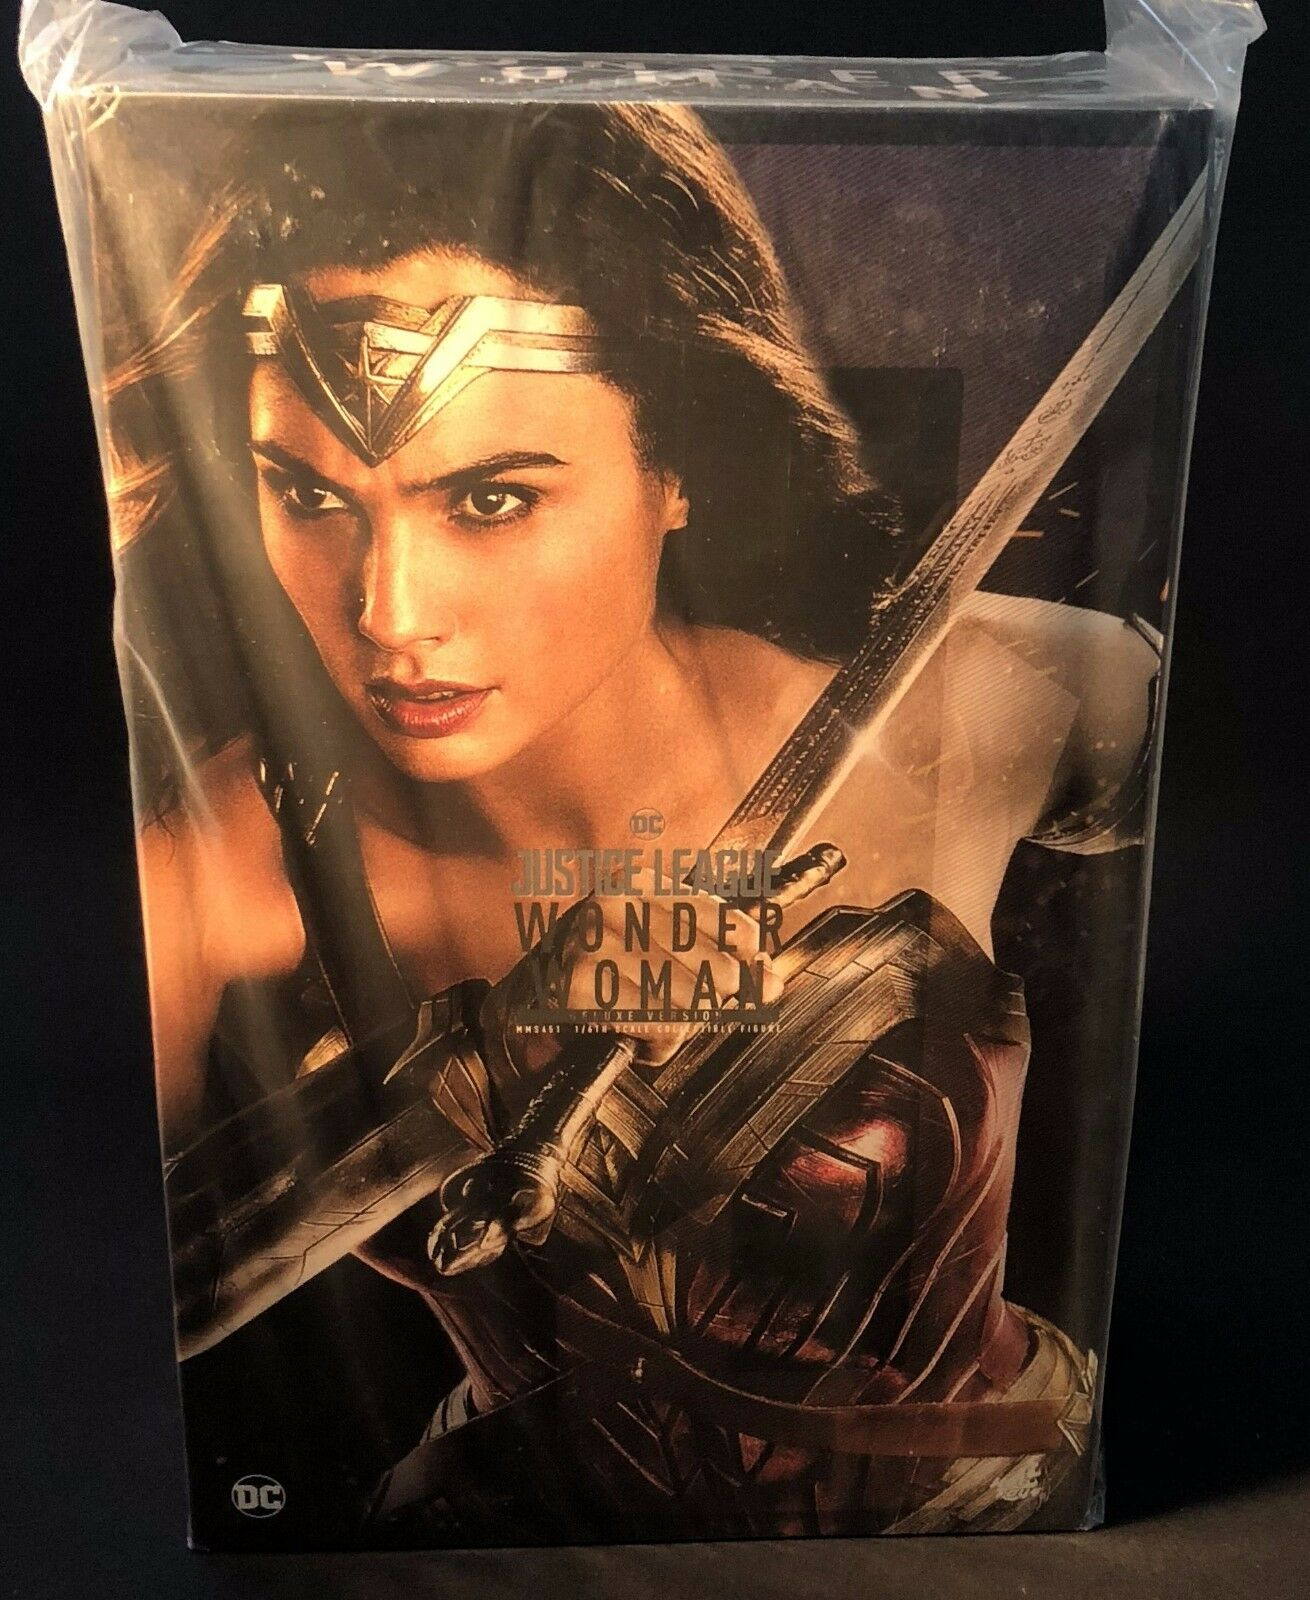 HOT TOYS MMS451 Justice League Wonder Woman 3.0 Gal Gadot 1/6 Figure Deluxe Ver.